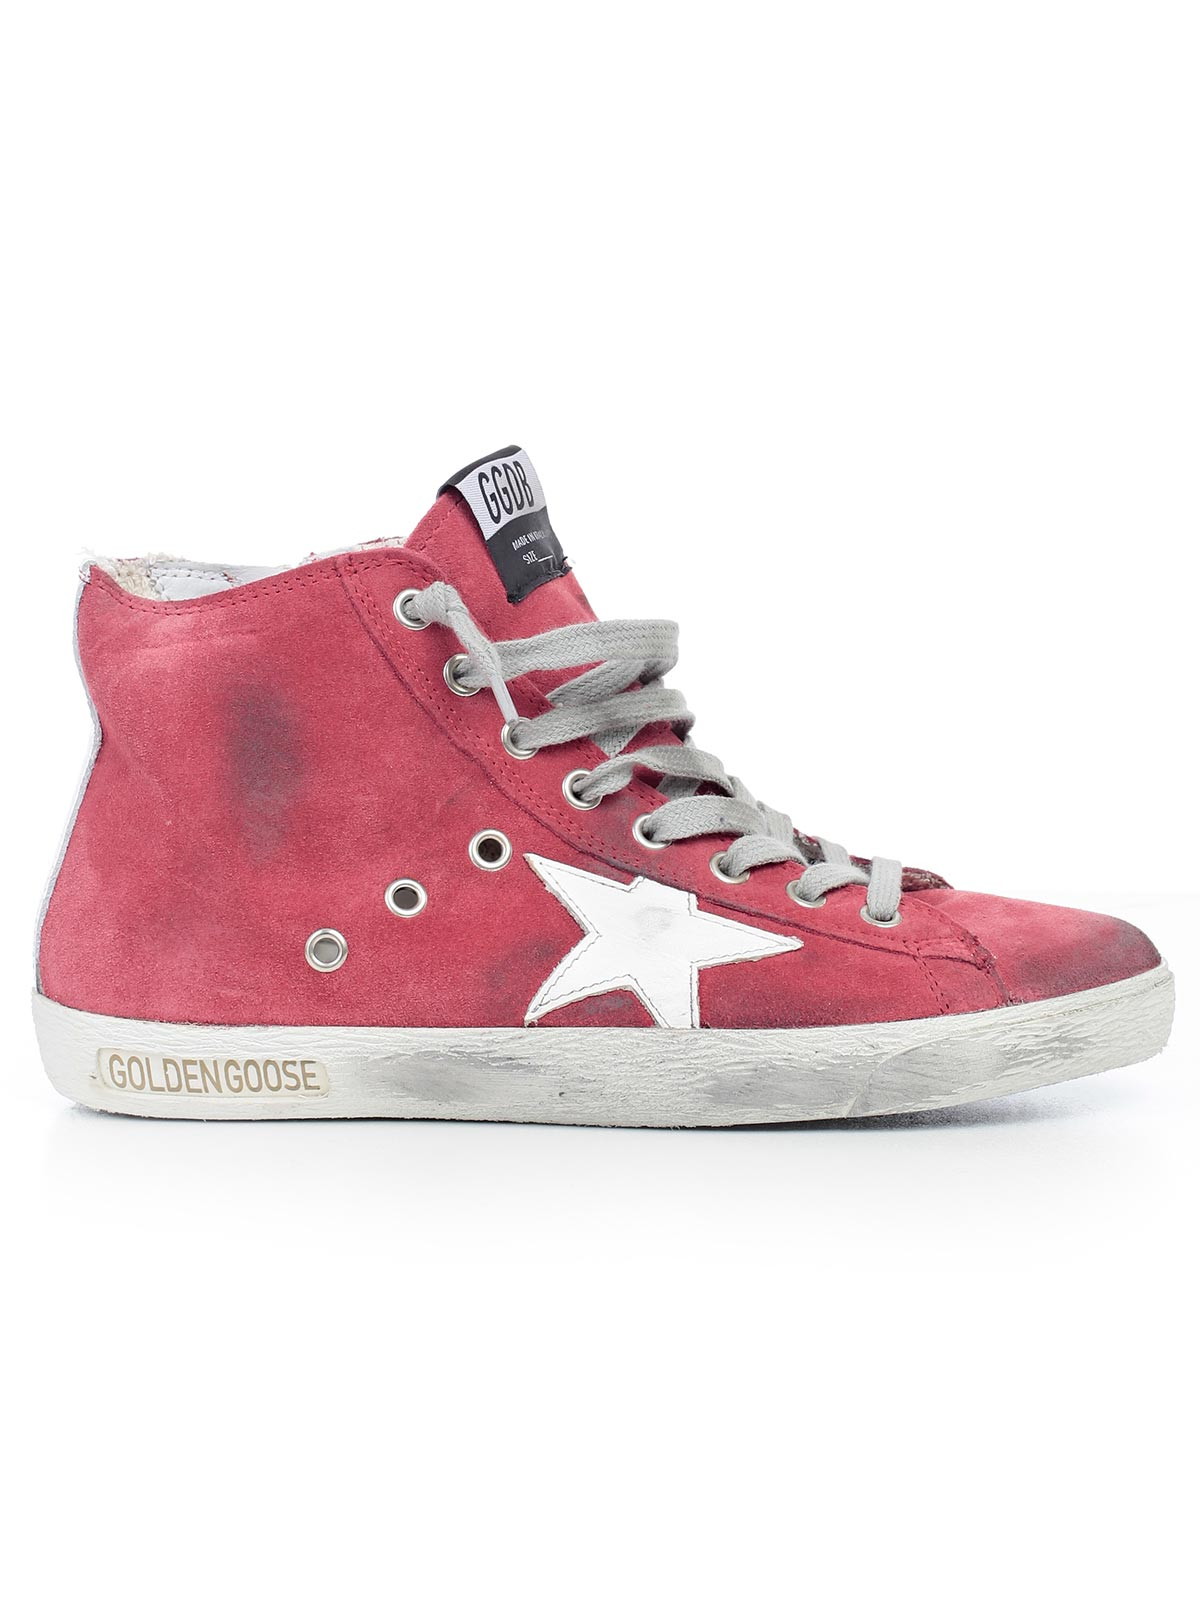 Picture of Golden Goose Deluxe Brand Footwear